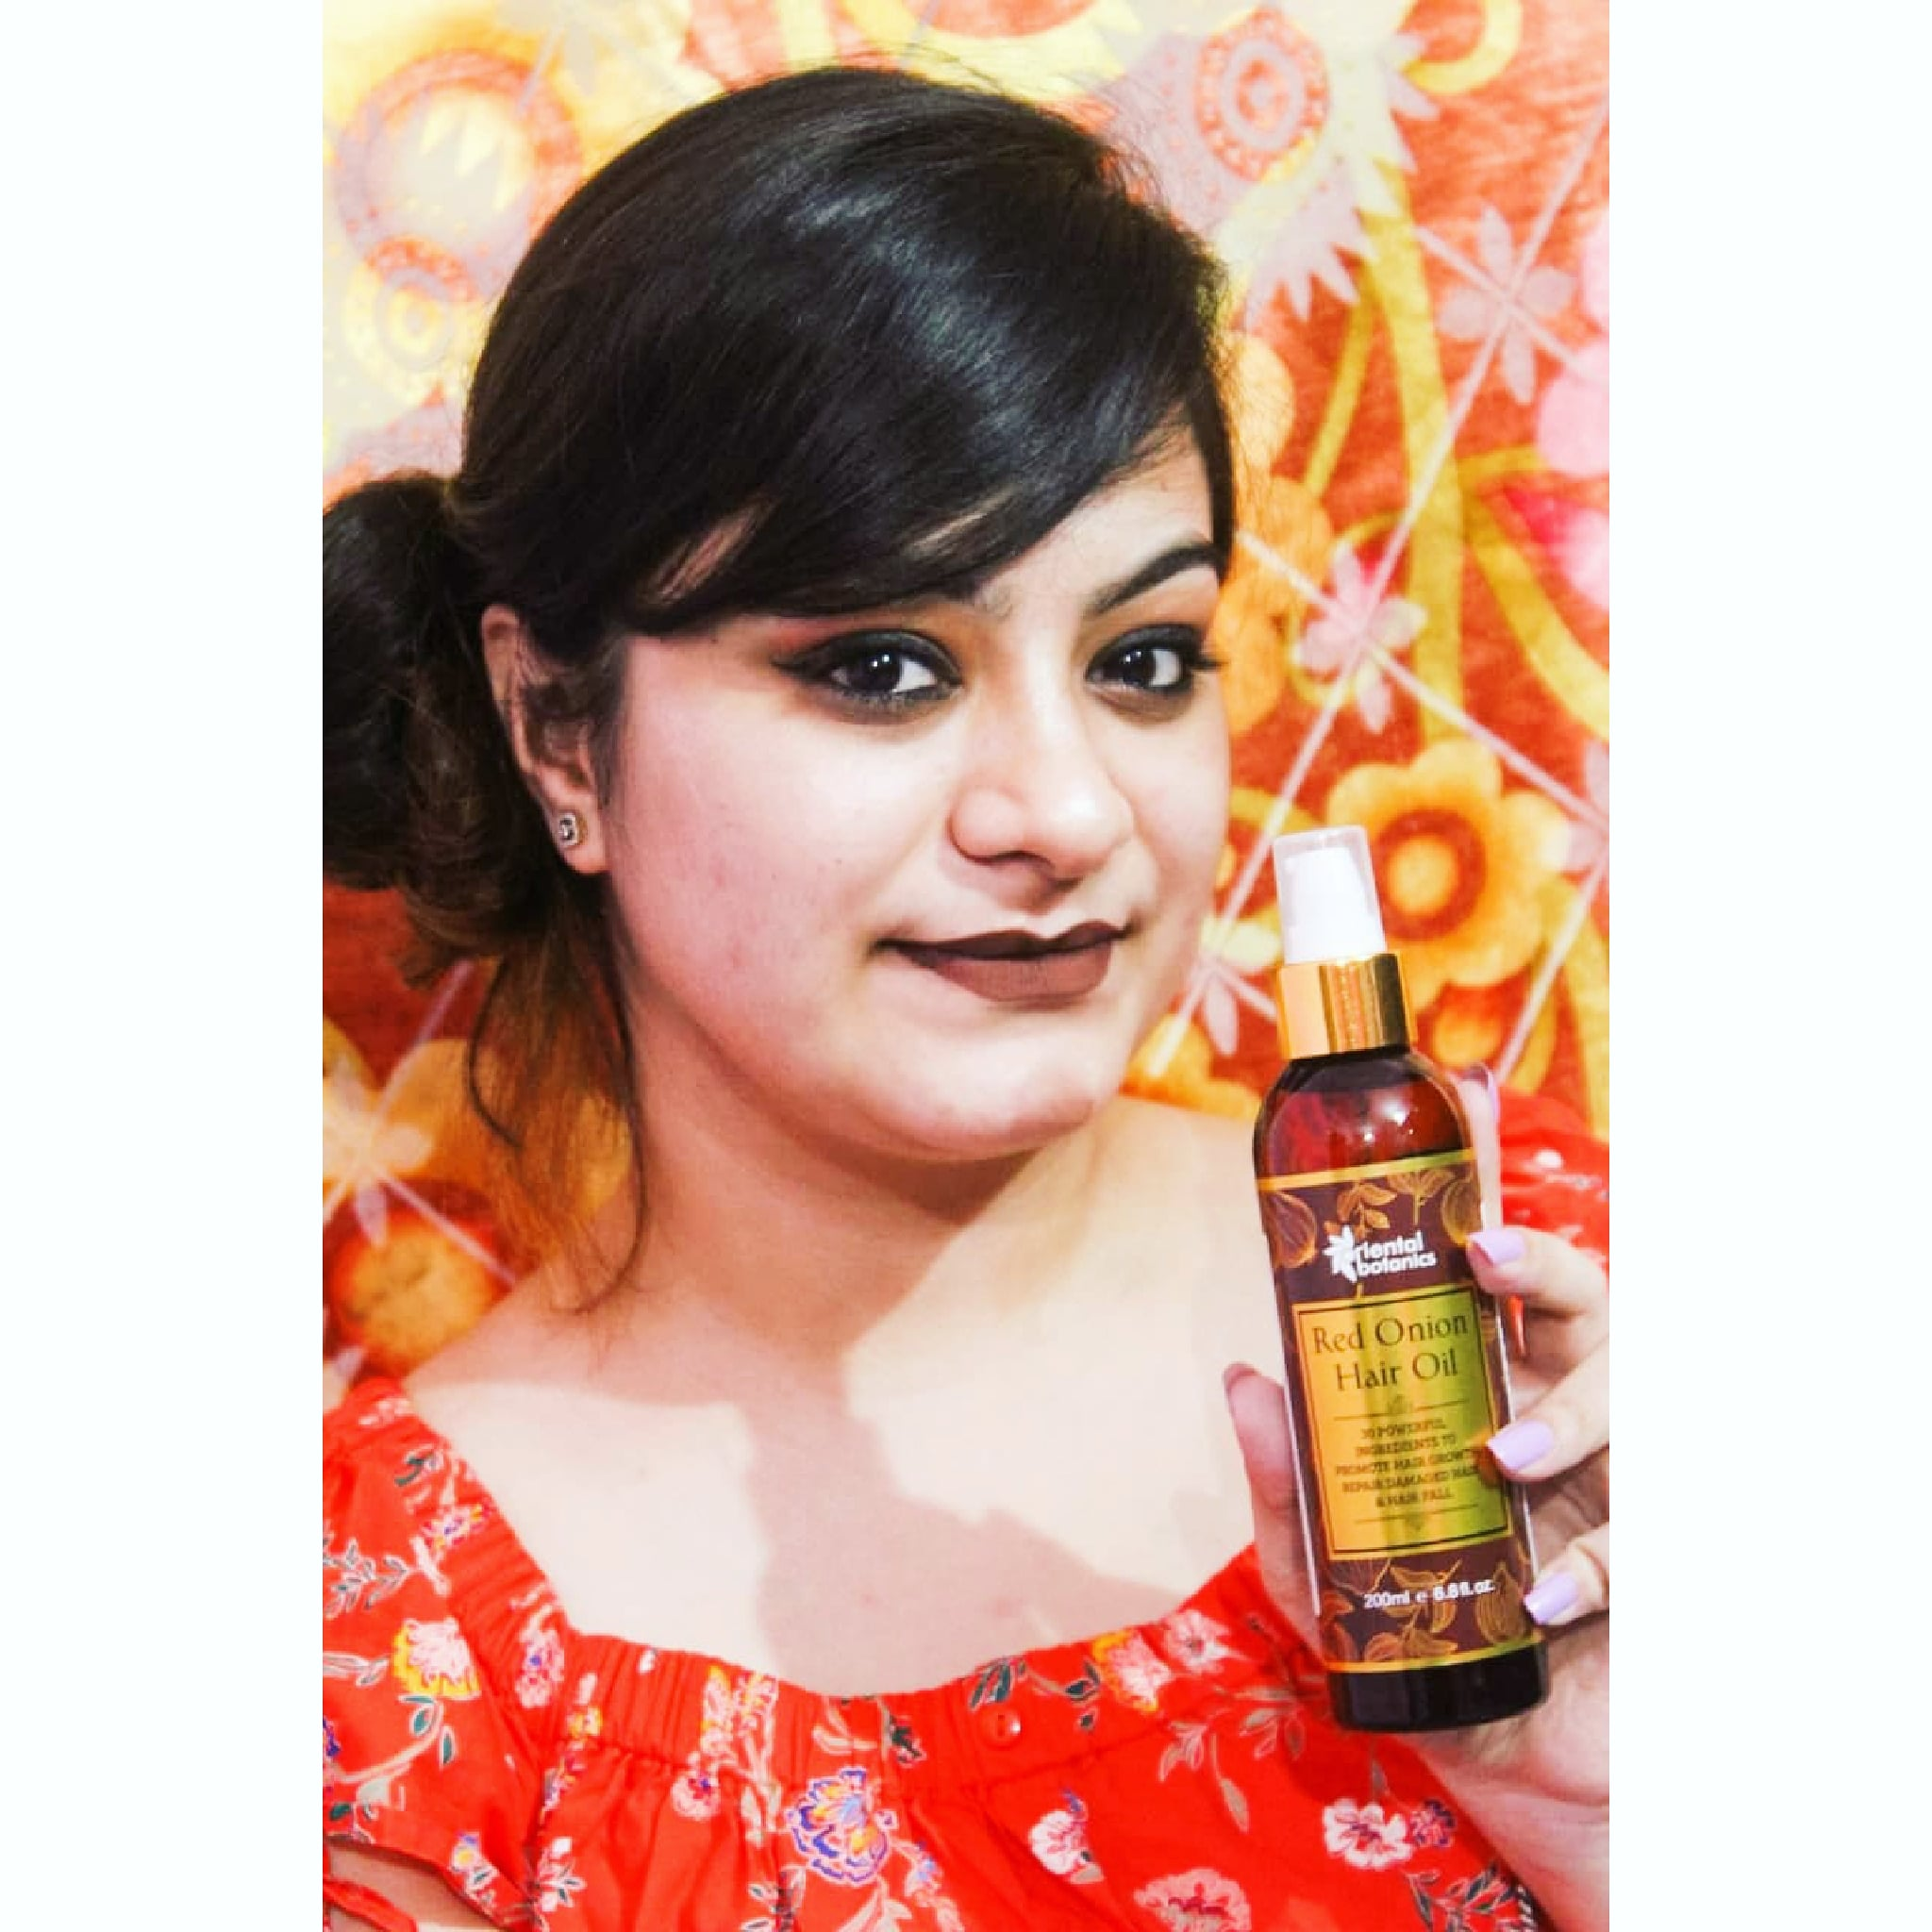 Oriental Botanics Red Onion Hair Shampoo Conditioner Oil Mask-Amazing Haircare Range-By reviewsbydipali-3